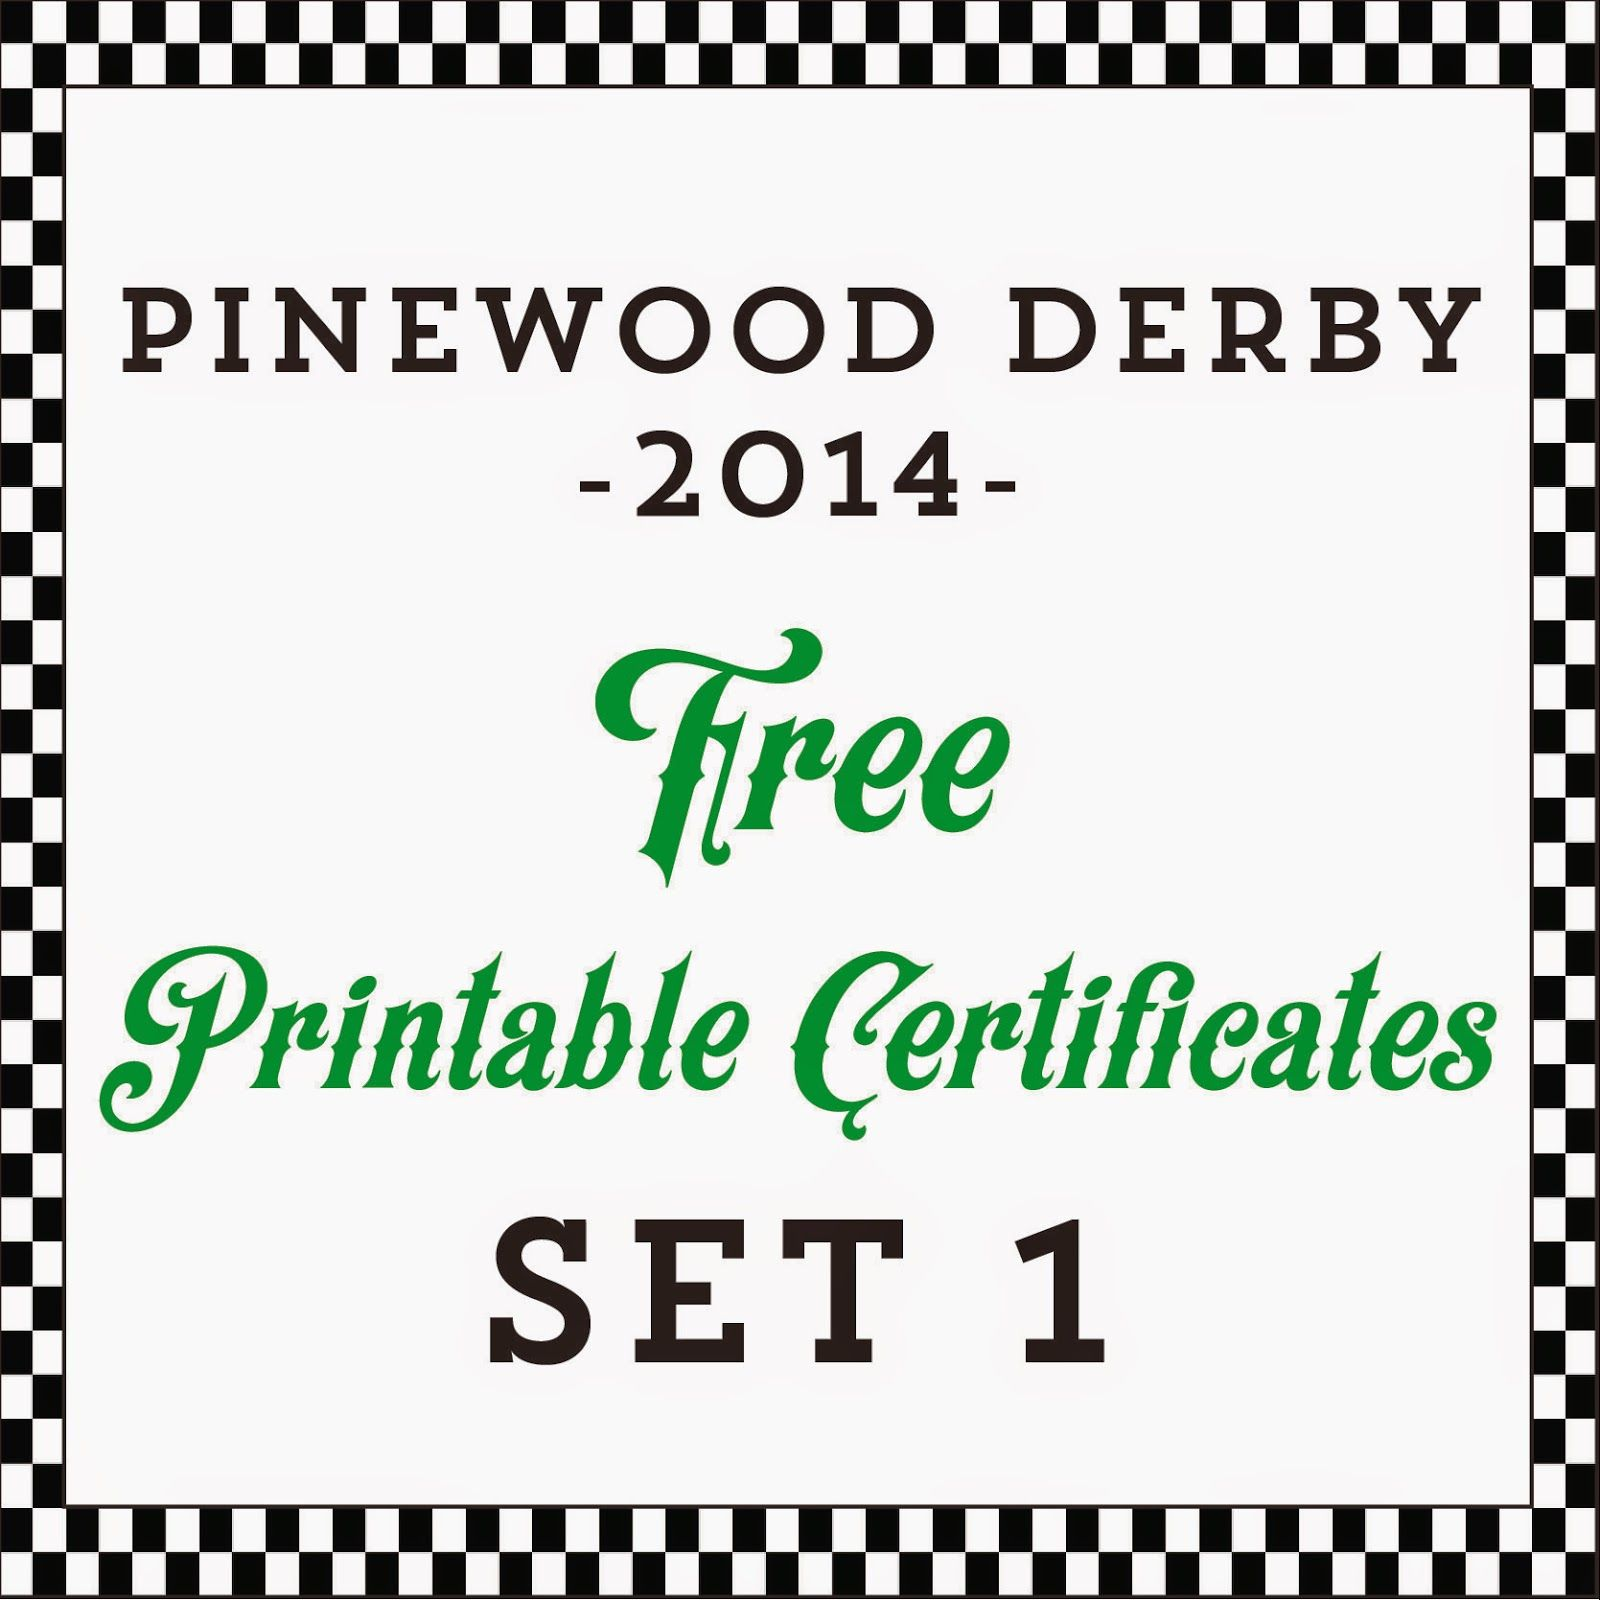 image regarding Pinewood Derby Awards Printable referred to as No cost Printable Pinewood Derby Awards (Sizzling Commodity Residence